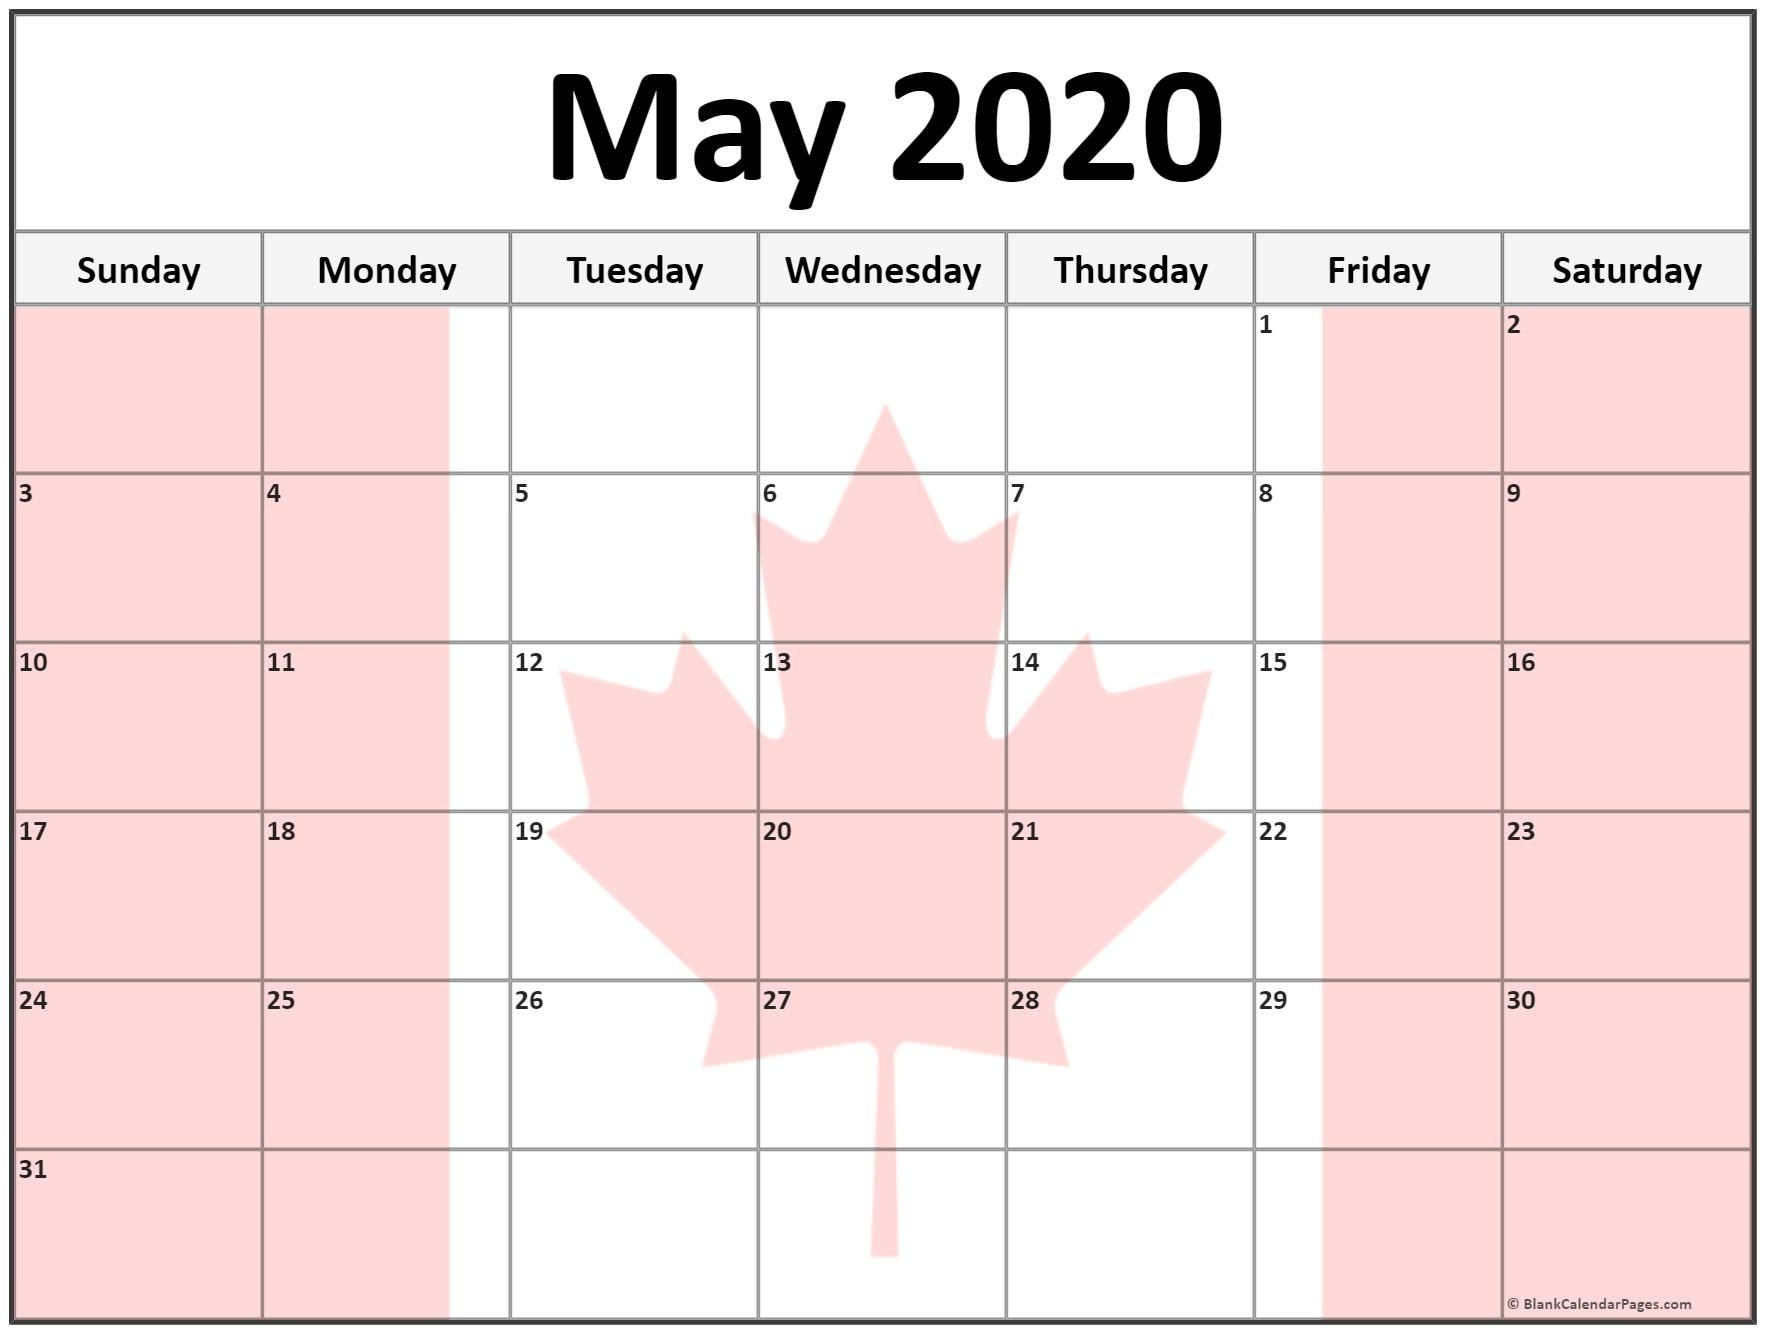 Collection Of May 2020 Photo Calendars With Image Filters. May 2020 Calendar Canada